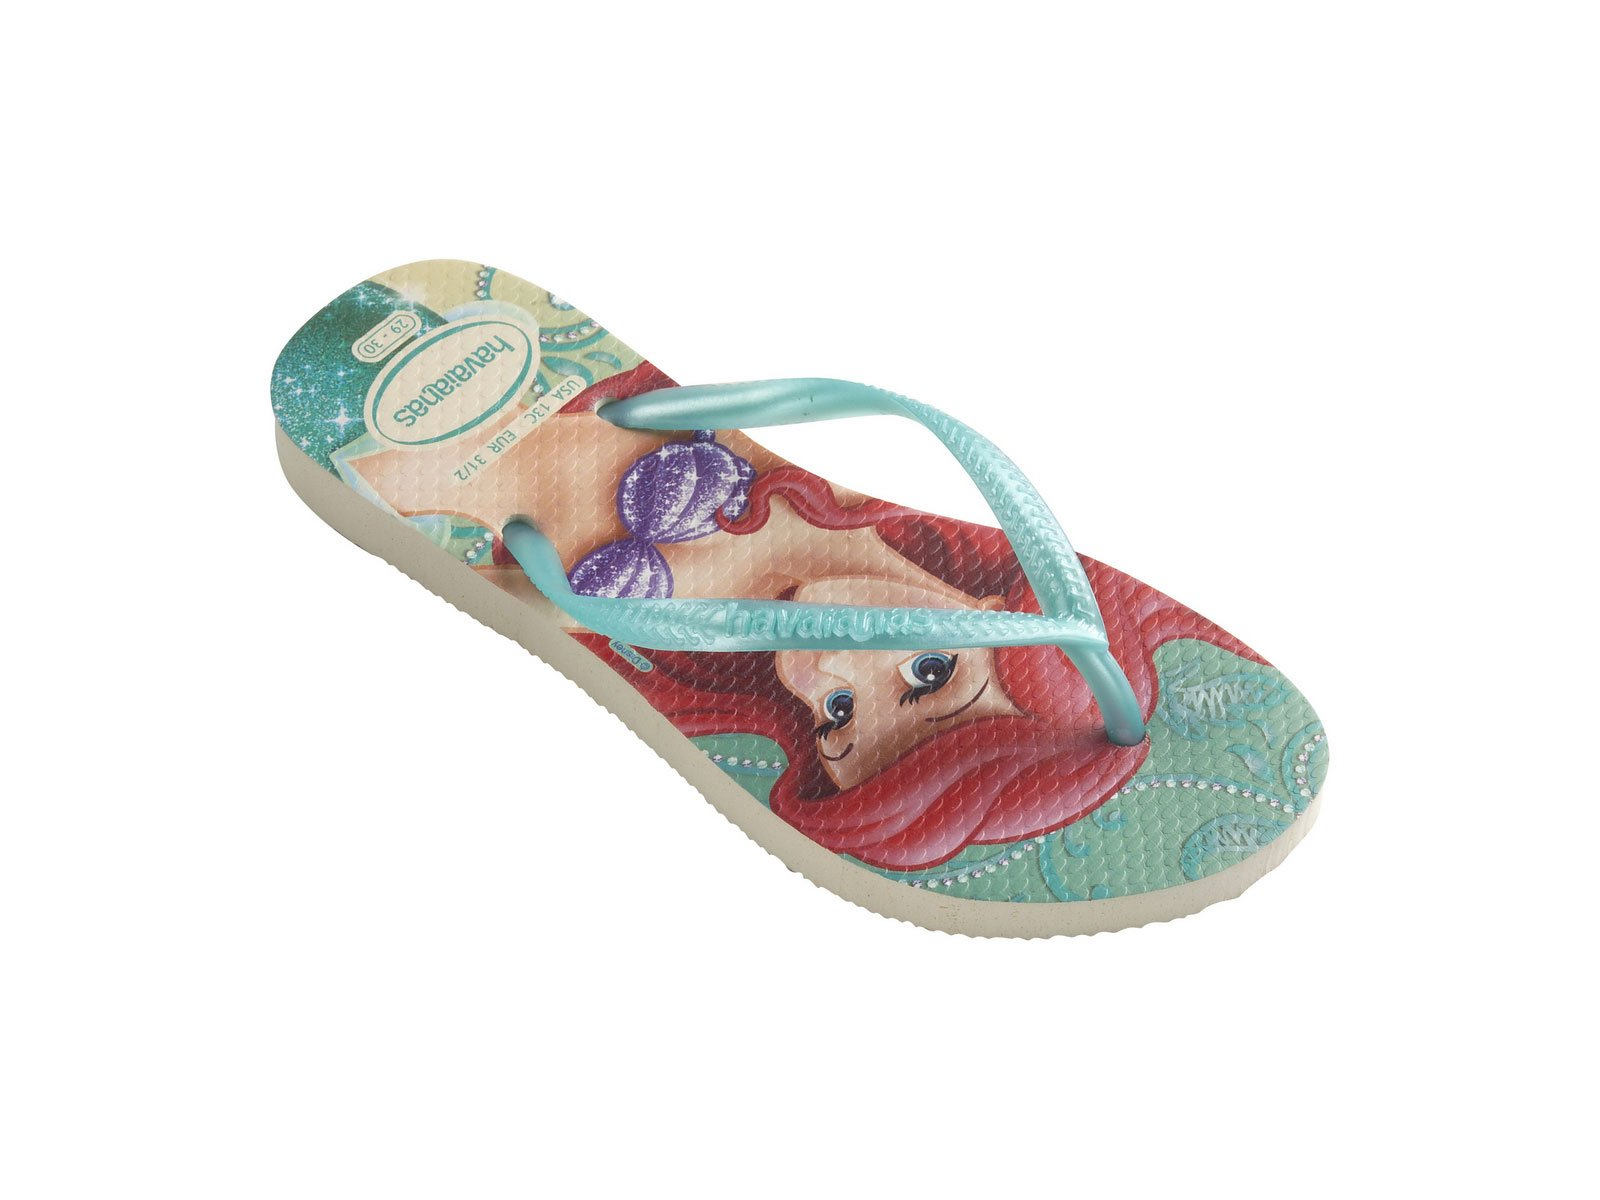 Flopstore USA selling havaianas flip flops and other popular brands such as Havaianas, Reef, Teva, Crocs, Billabong, Nike, Cobian, Etnies, and many more.